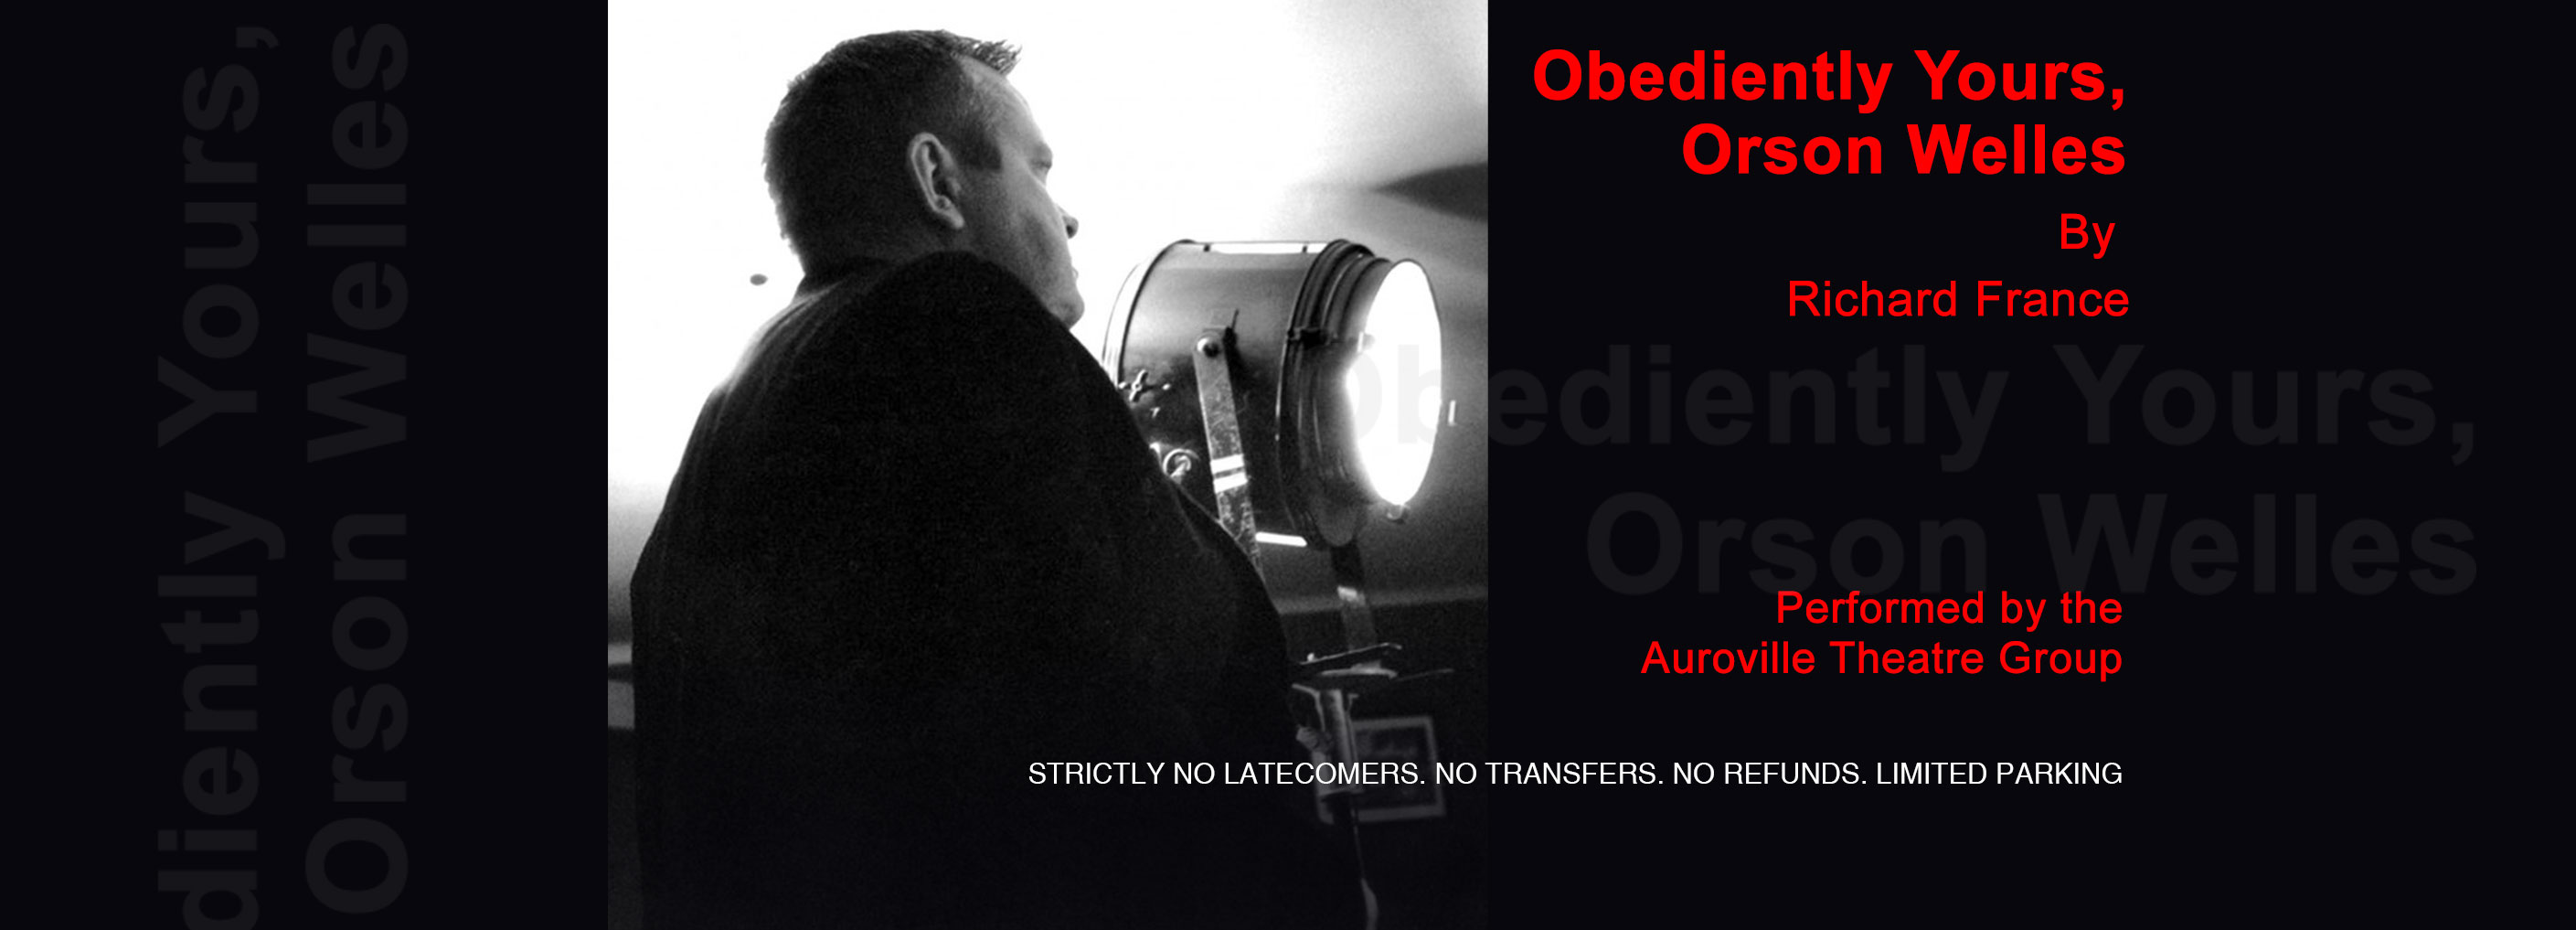 Obediently Yours, Orson Welles